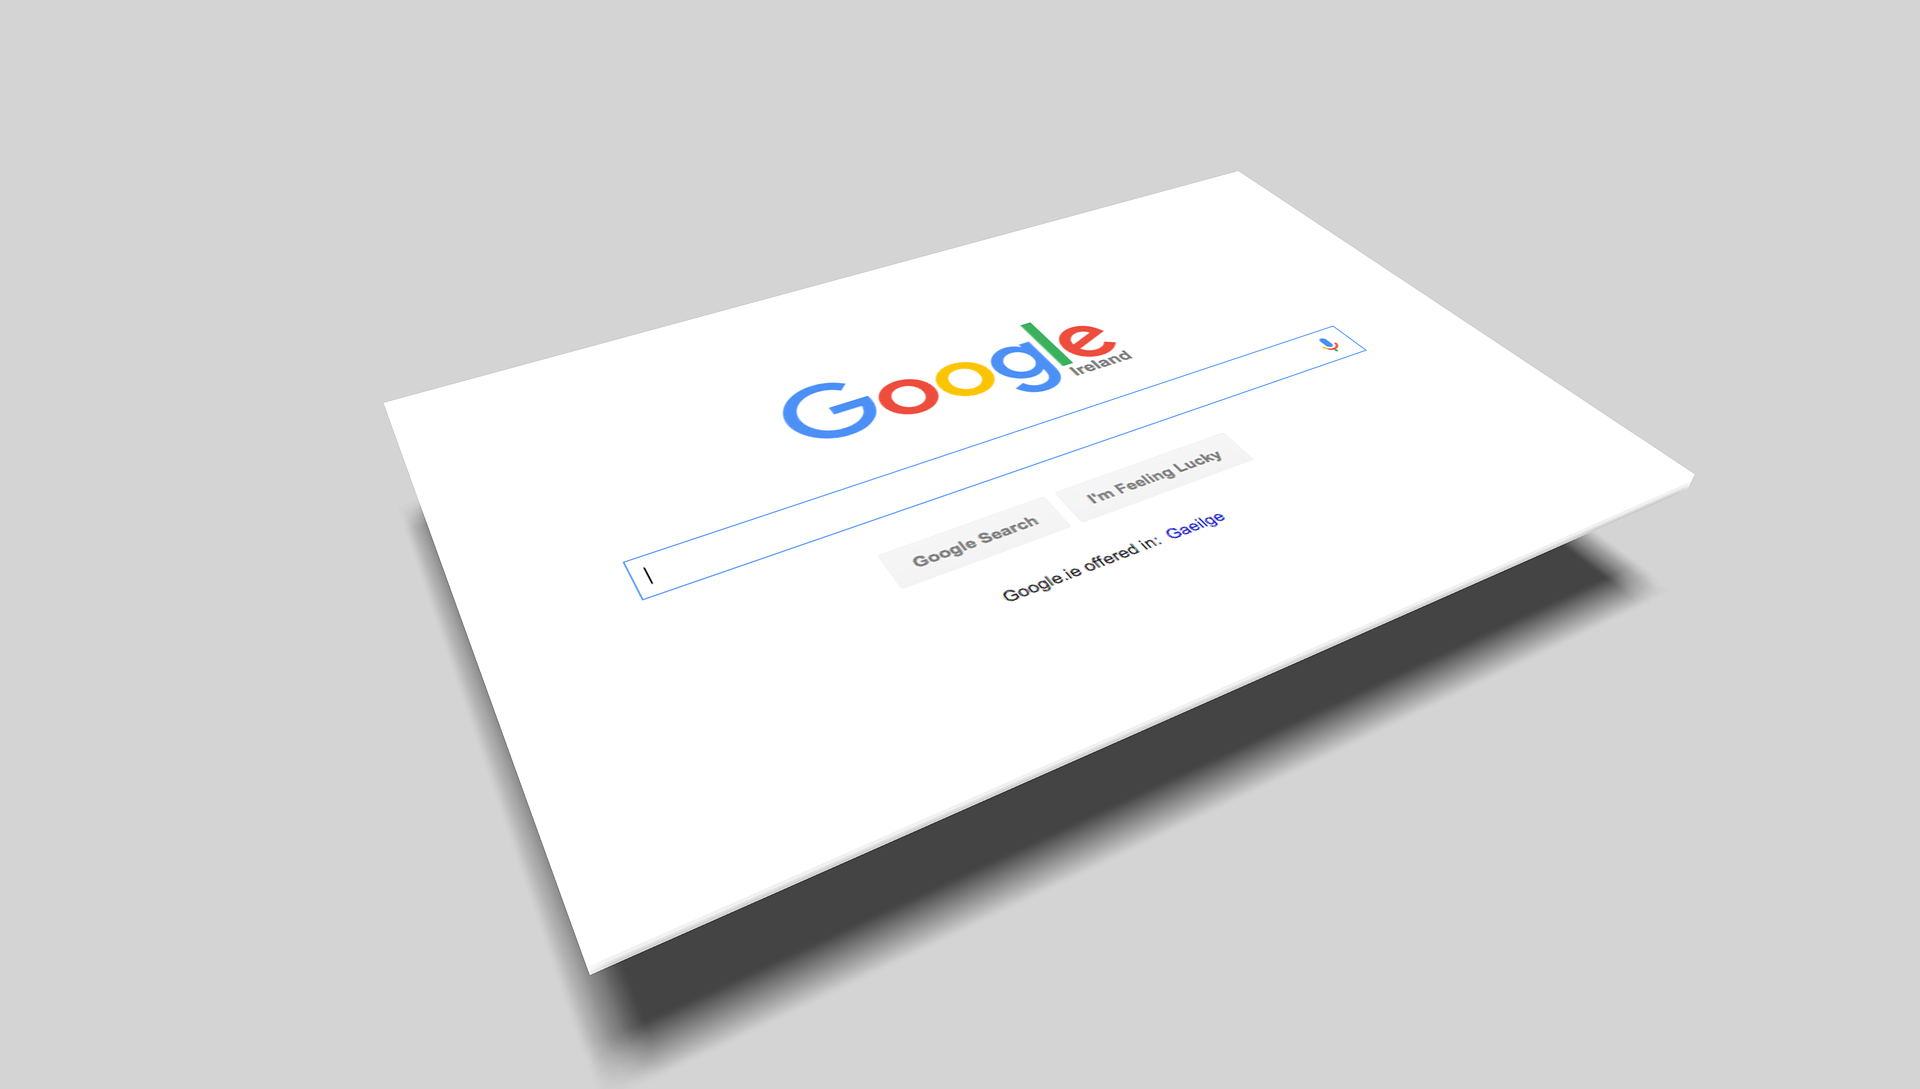 Google Search Console: What can be tracked with this tool?